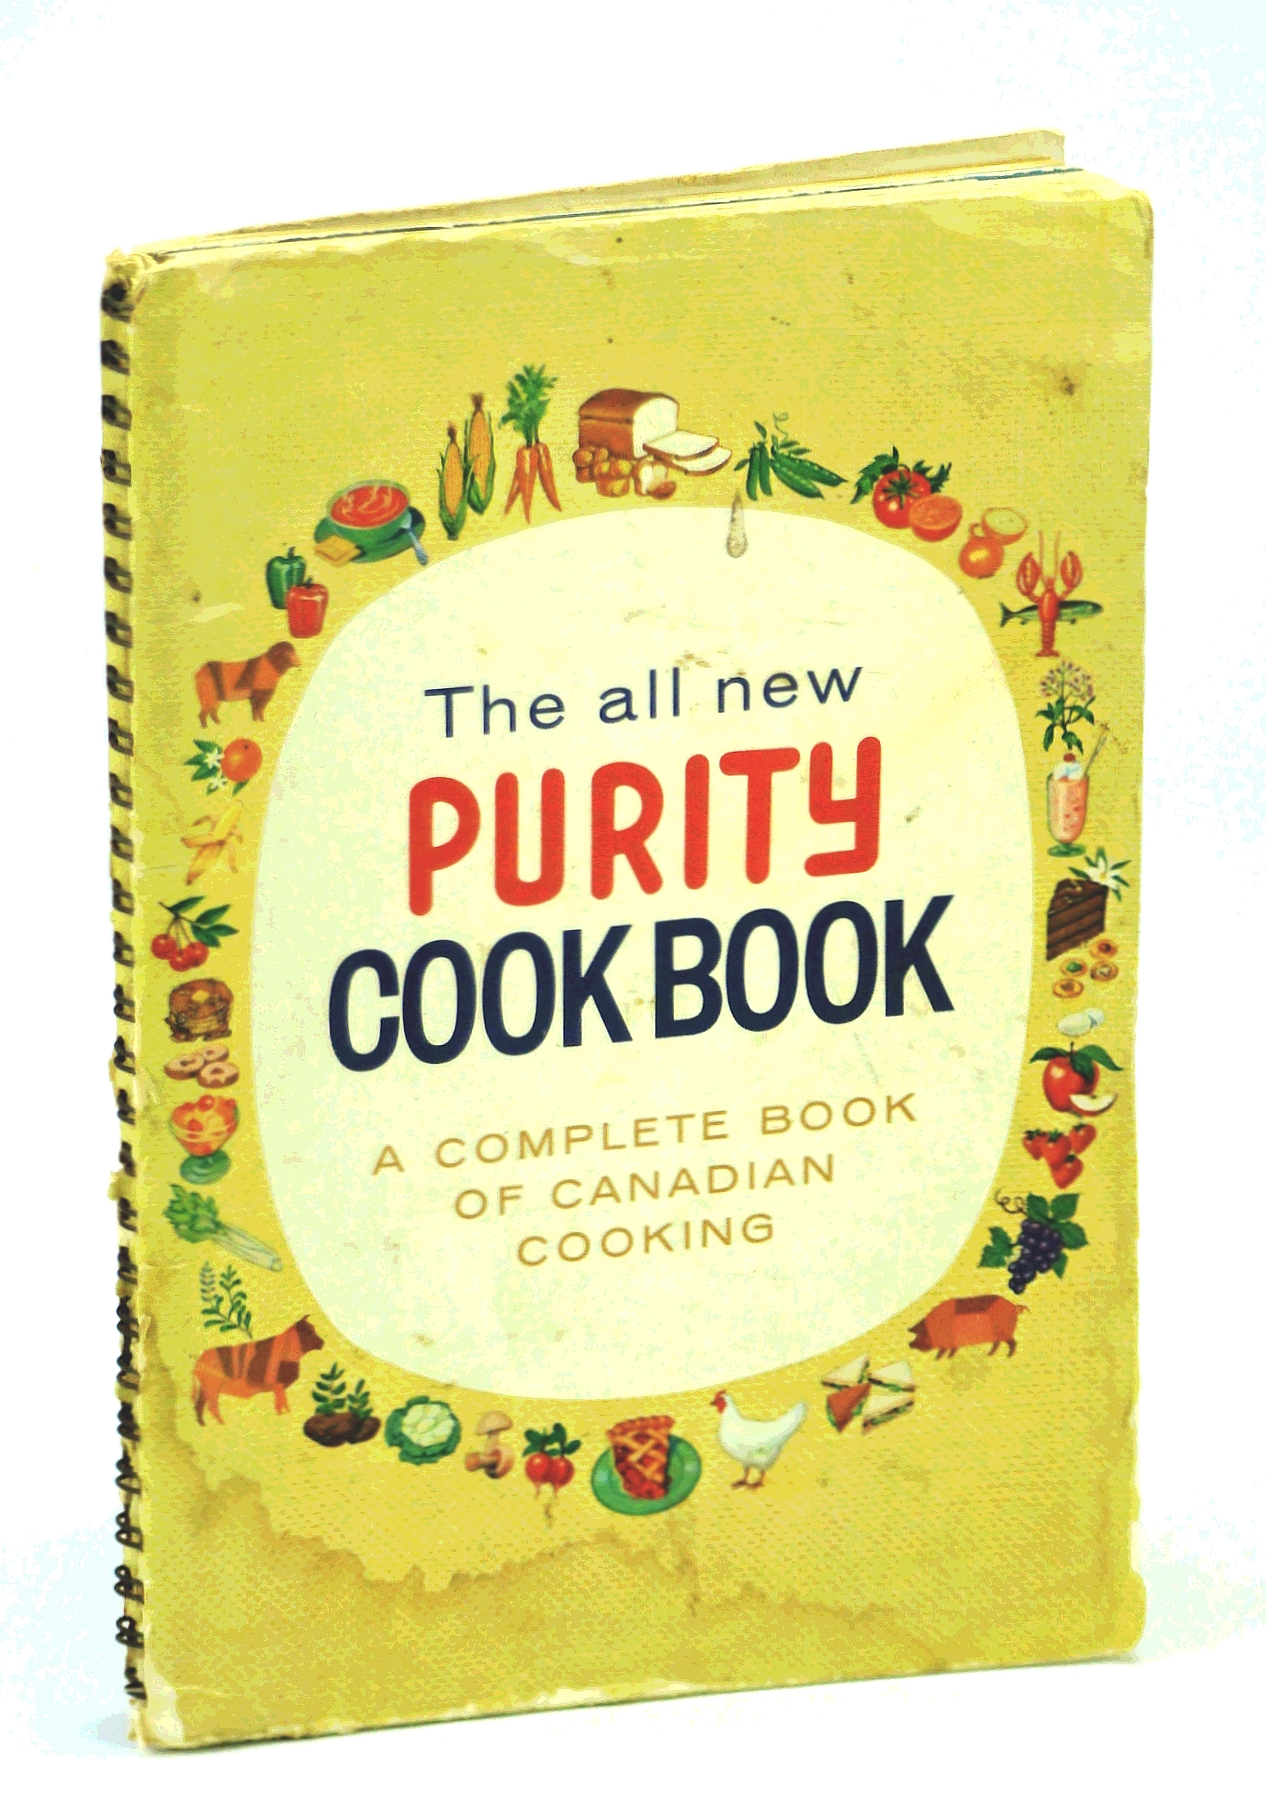 Image for THE ALL NEW PURITY COOK BOOK a Complete Book of Canadian Cooking